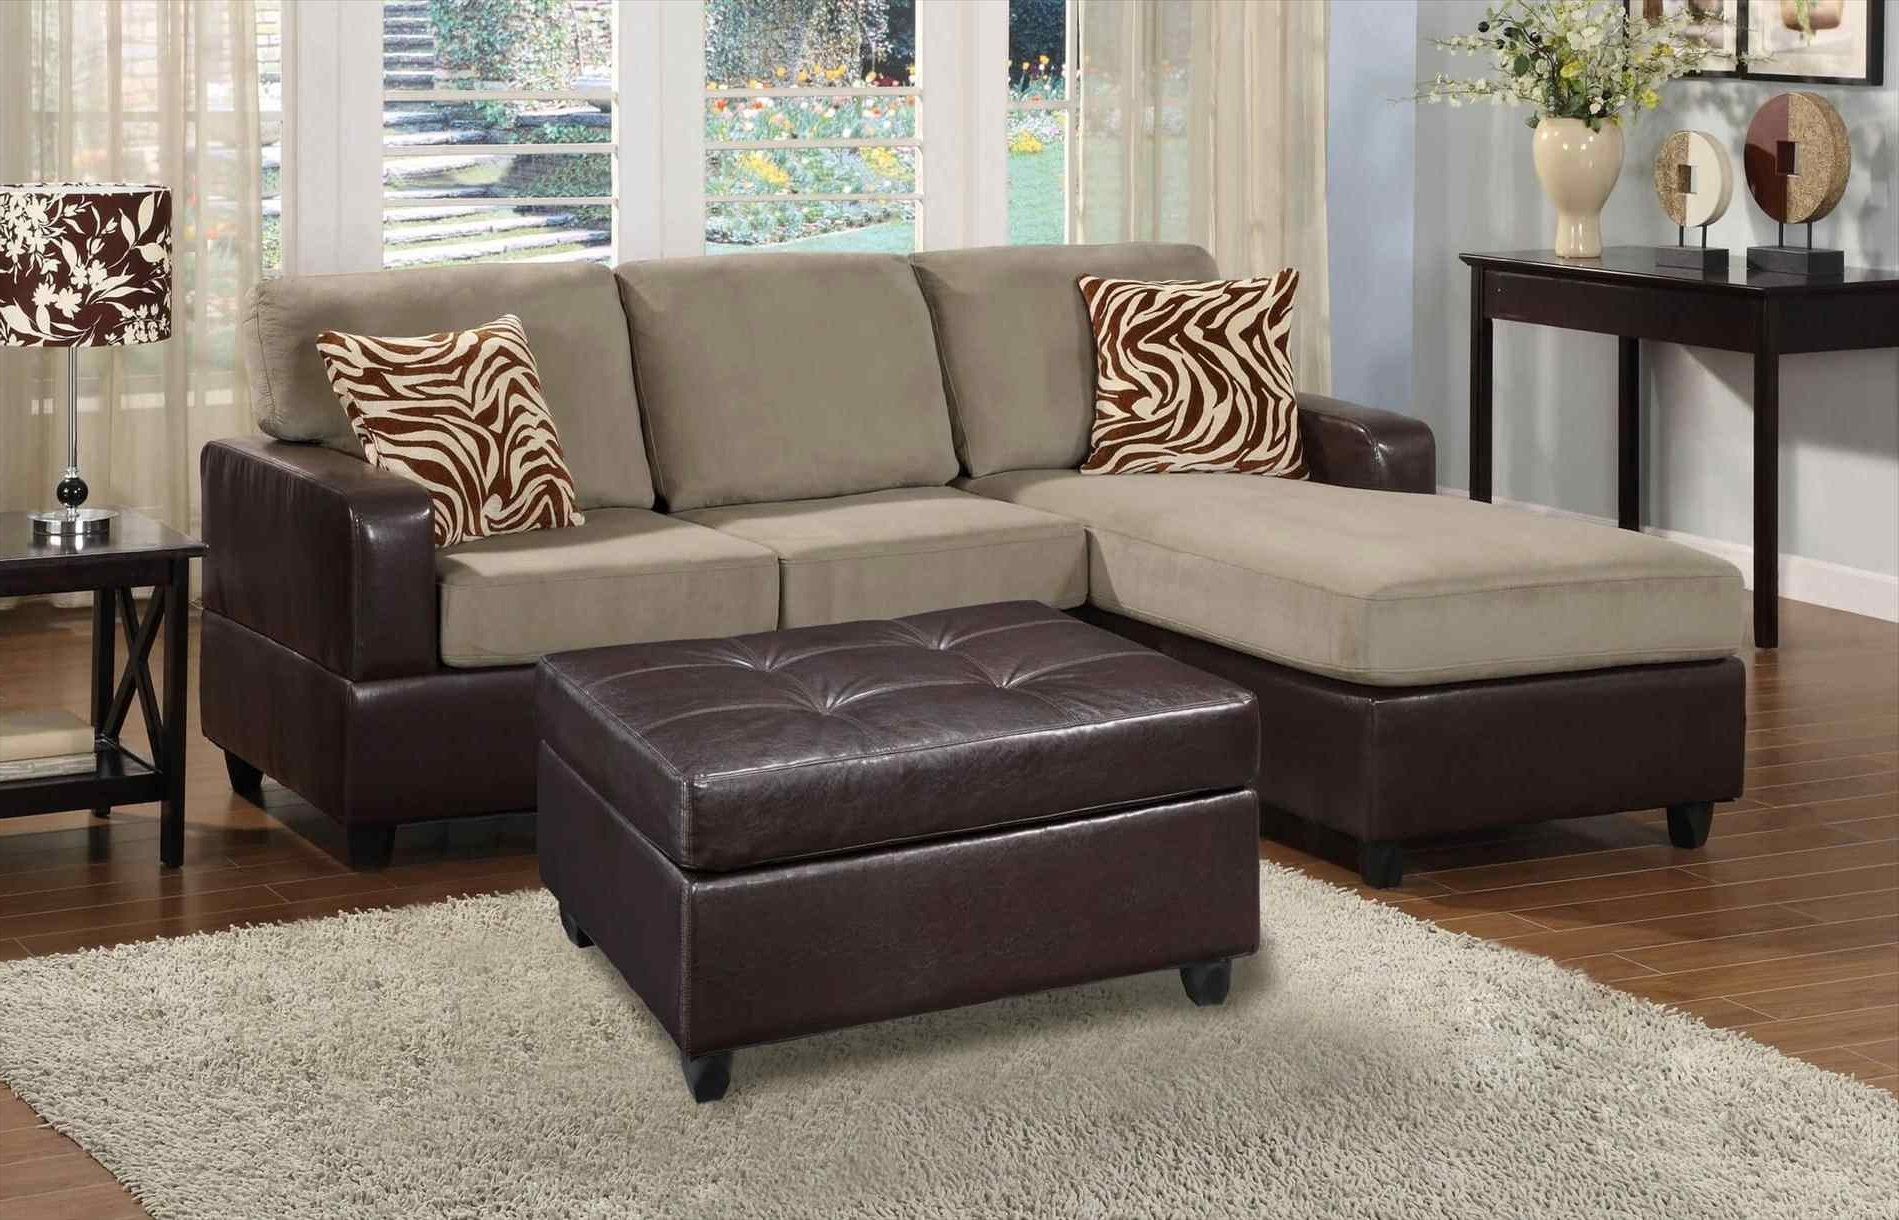 Sectional Sofas At Bad Boy With Regard To 2017 Couch : Ottomans Wrap Around Couch Unusual Design Large Sectional (View 13 of 15)